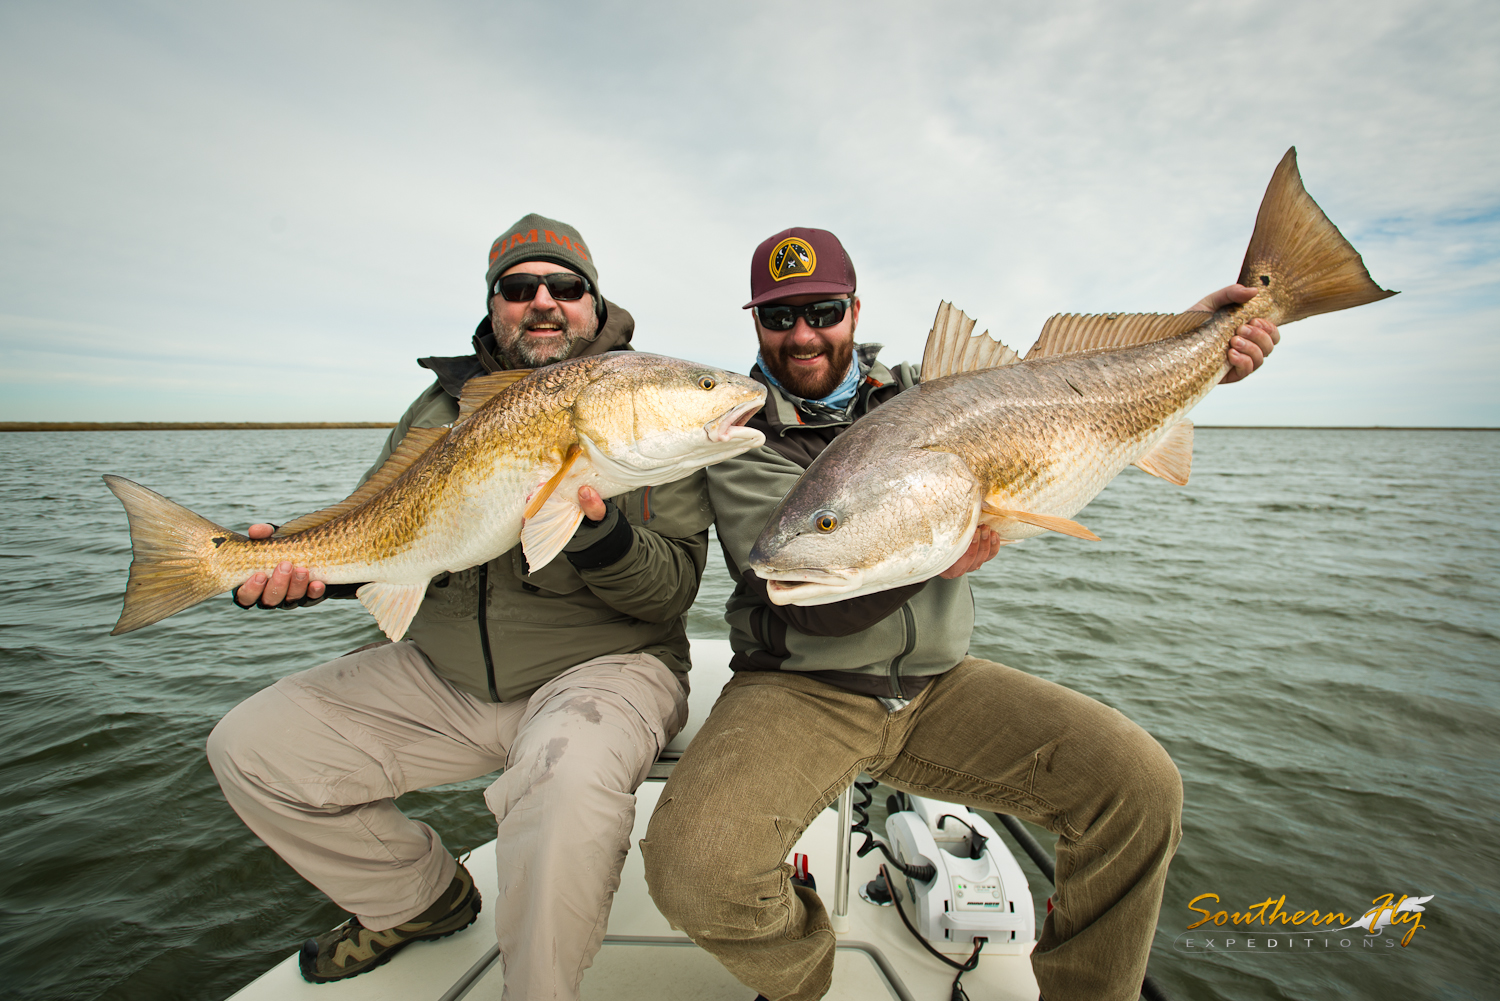 Weekend Fly Fishing Trips New Orleans Southern Fly Expeditions